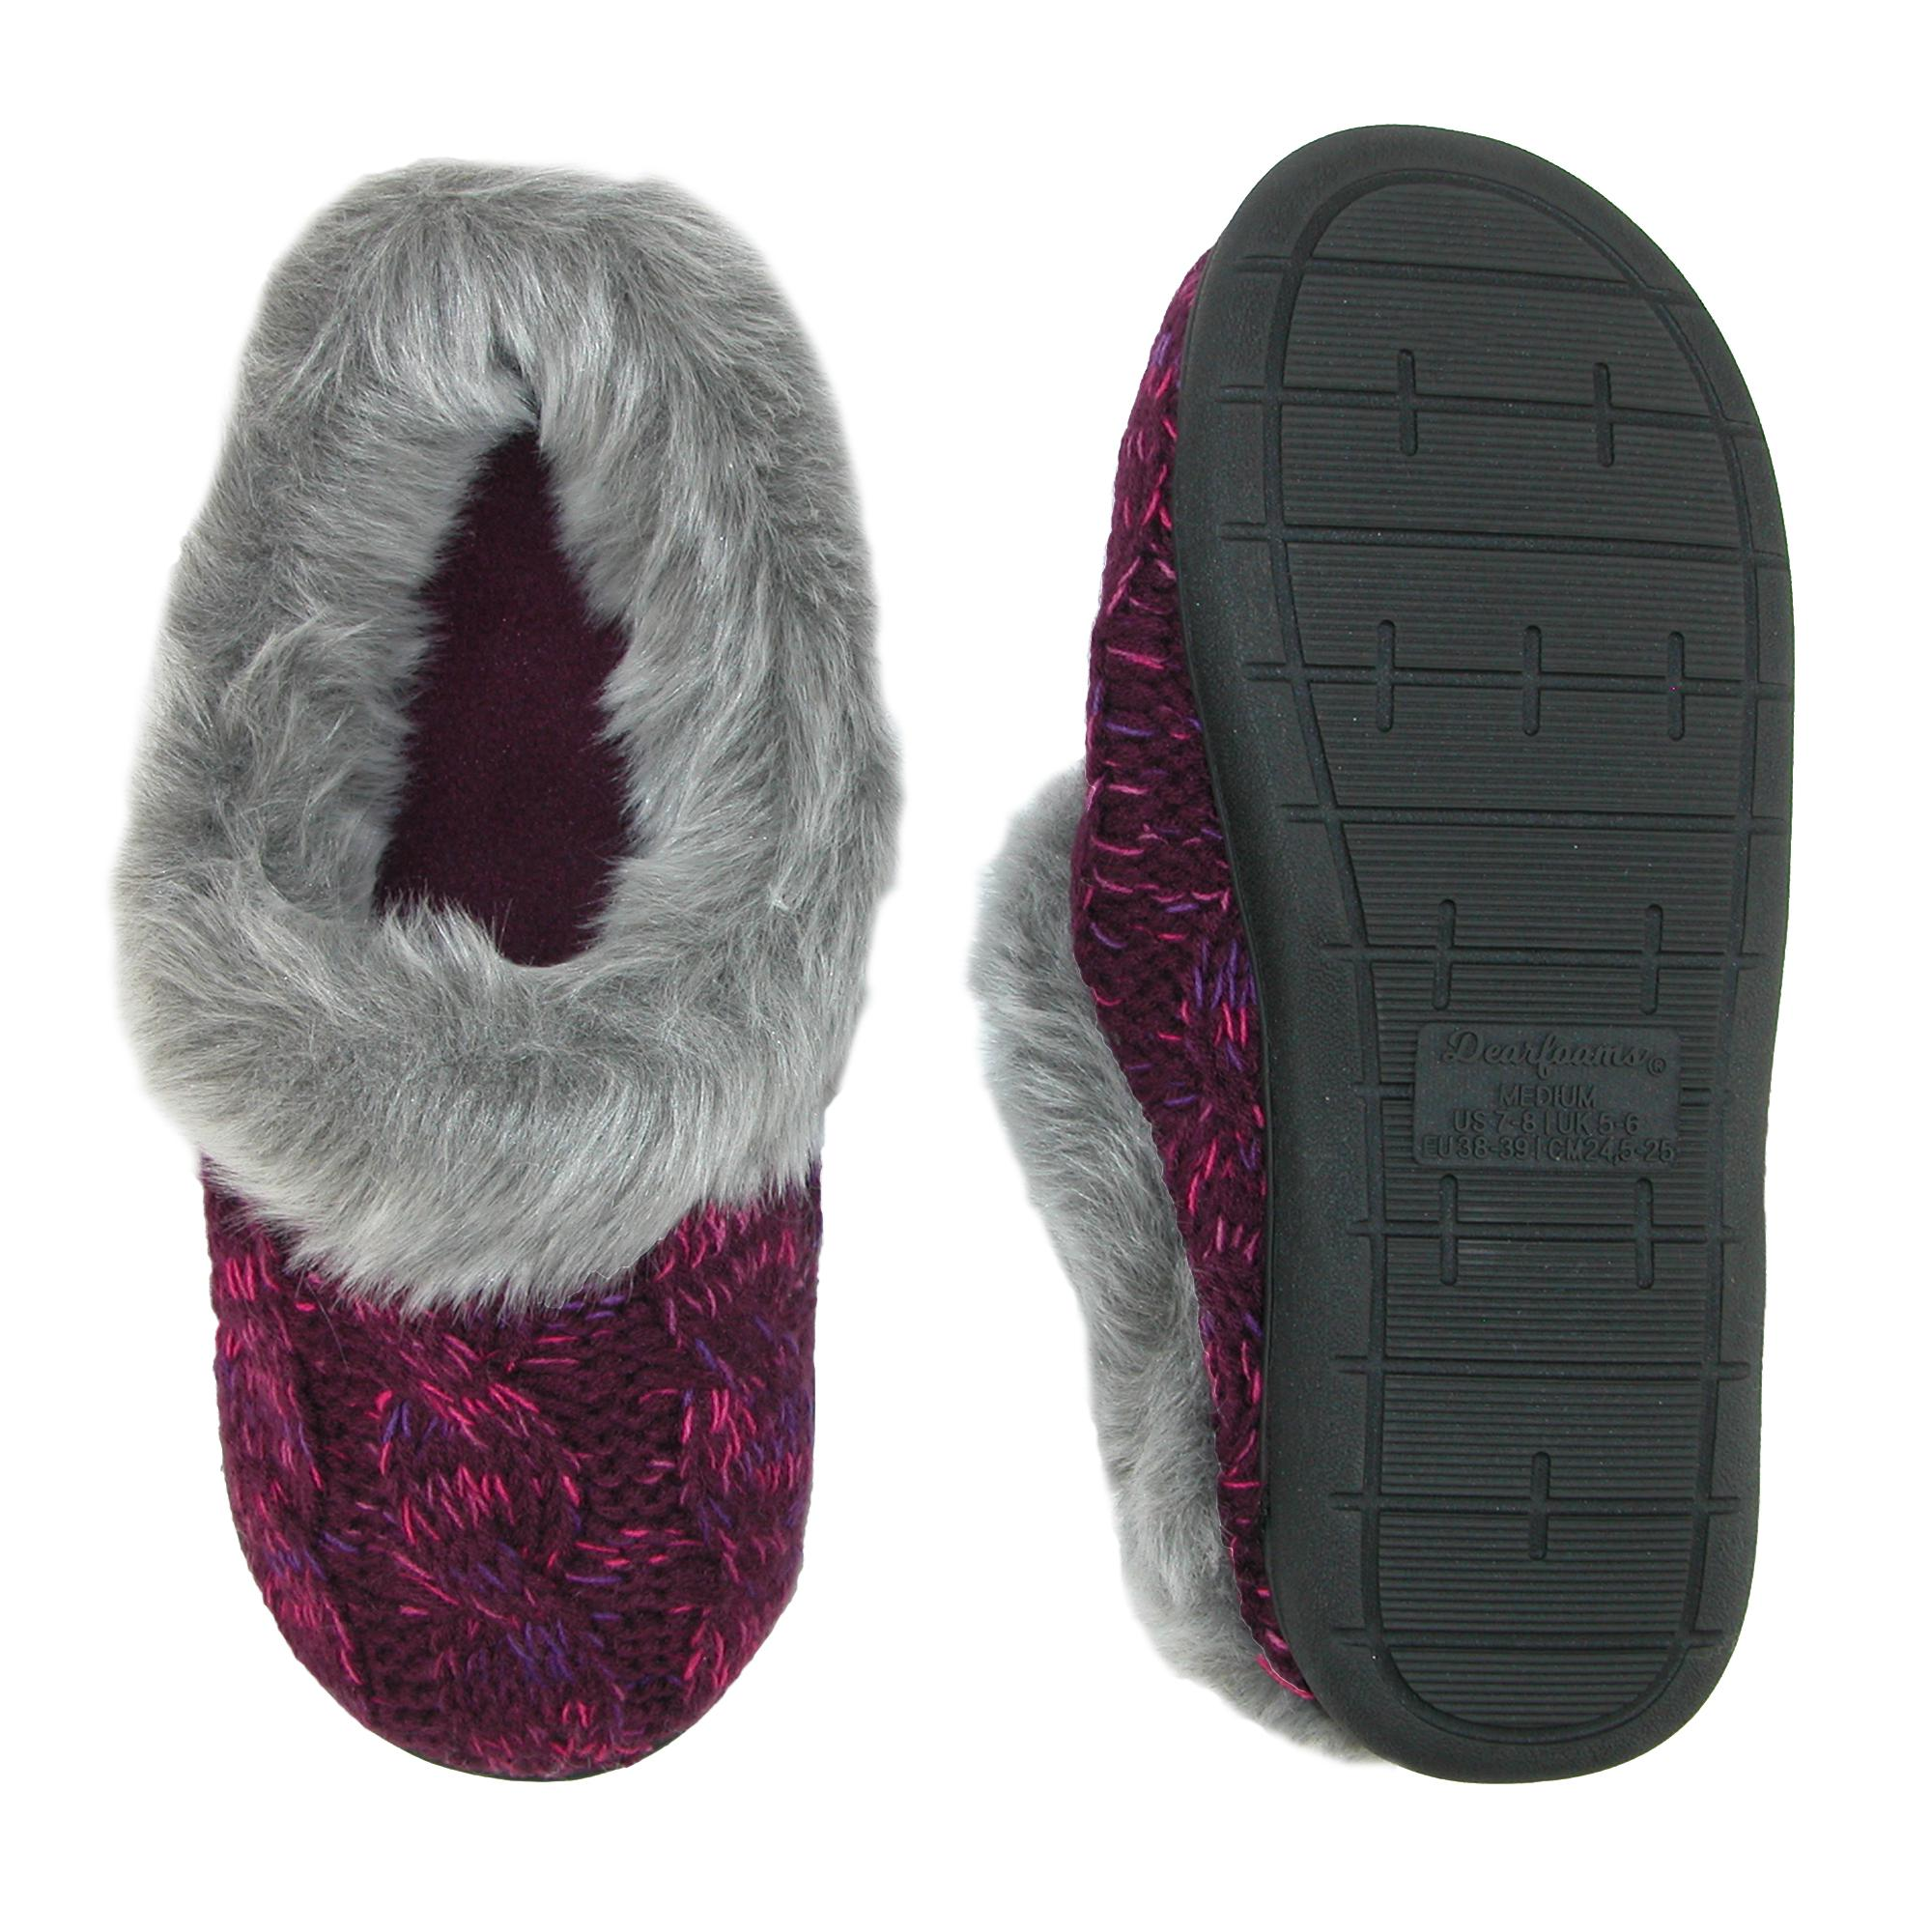 New-Dearfoams-Women-039-s-Cable-Knit-Clog-Slippers-with-Space-Dye-Accent thumbnail 4